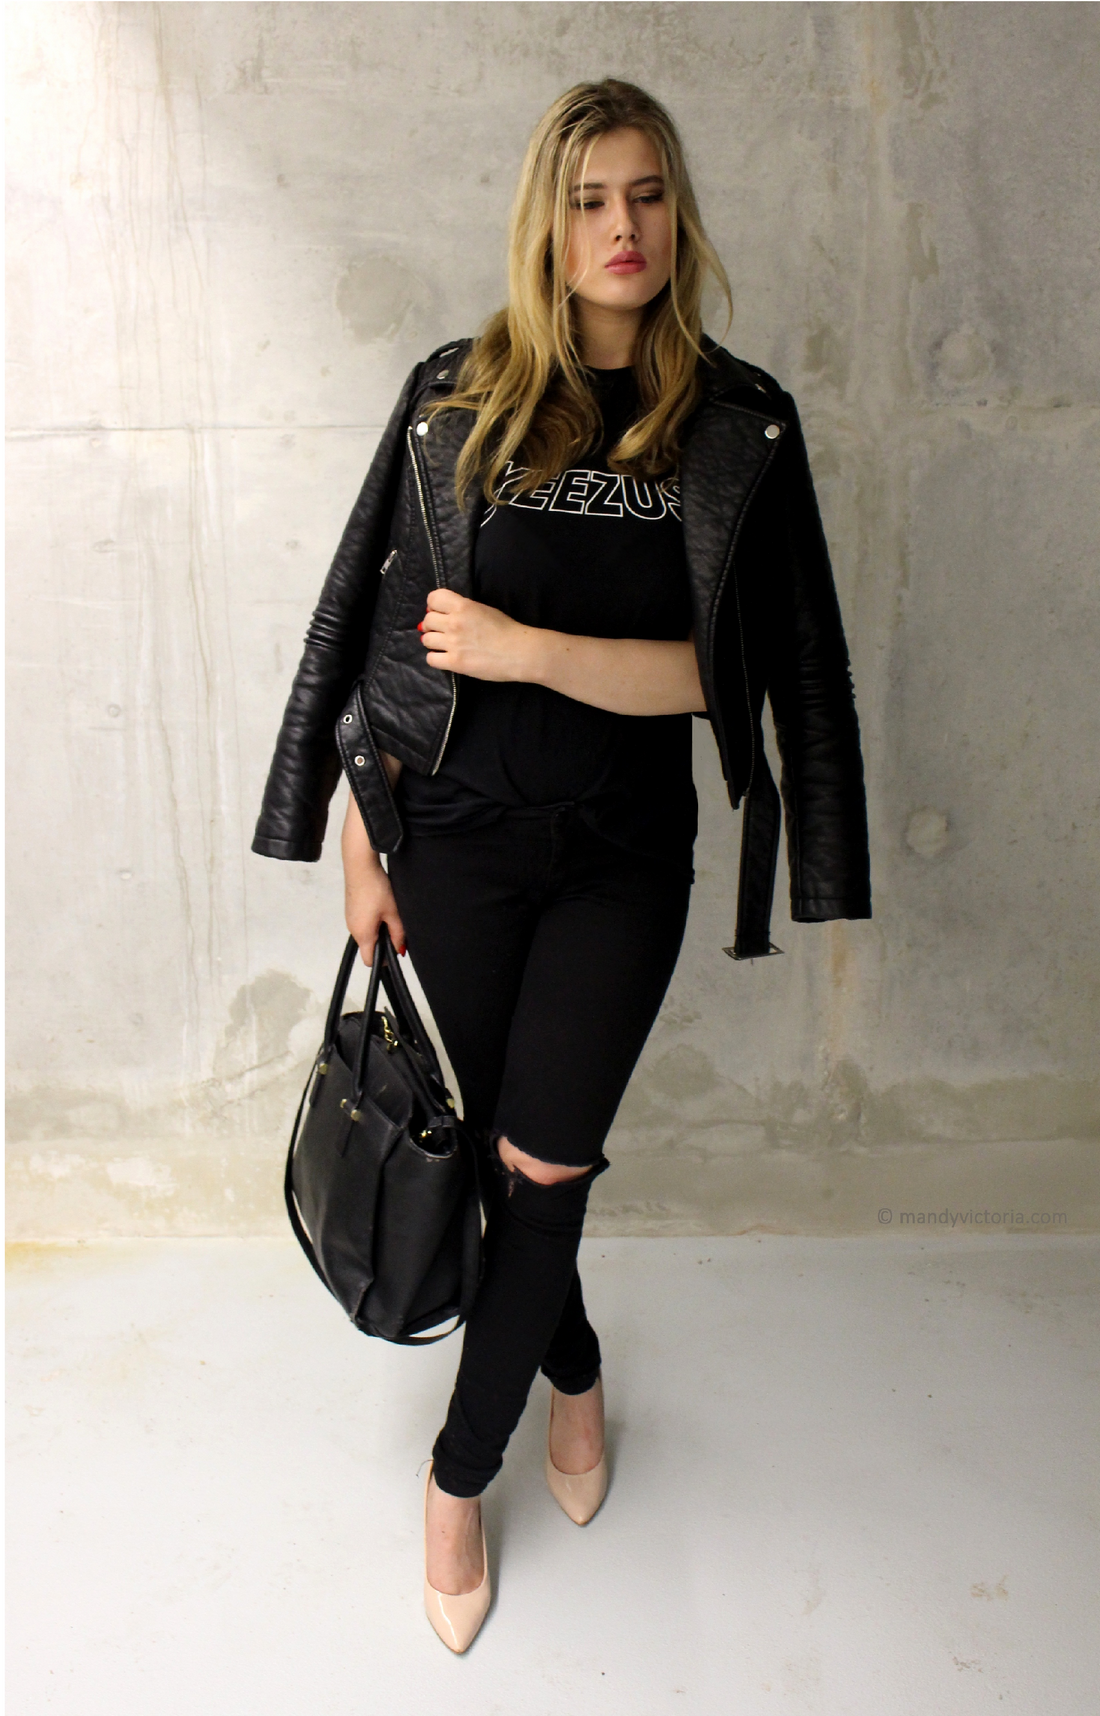 Yeezus outfit, copyright Mandy Victoria 2